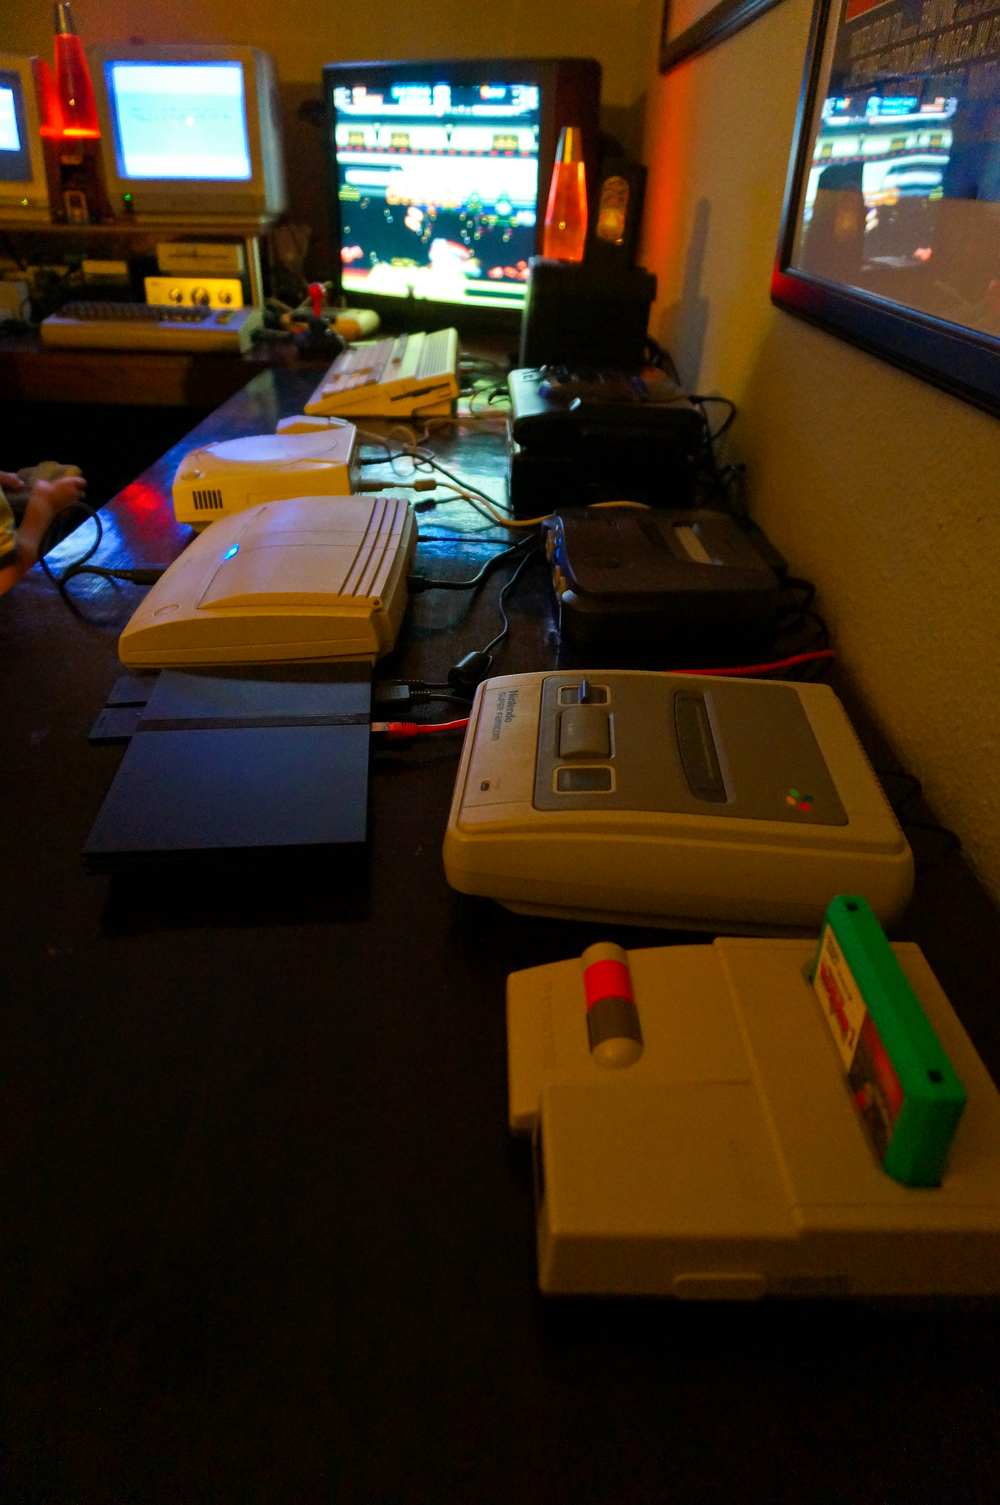 Lots of Consoles from the past